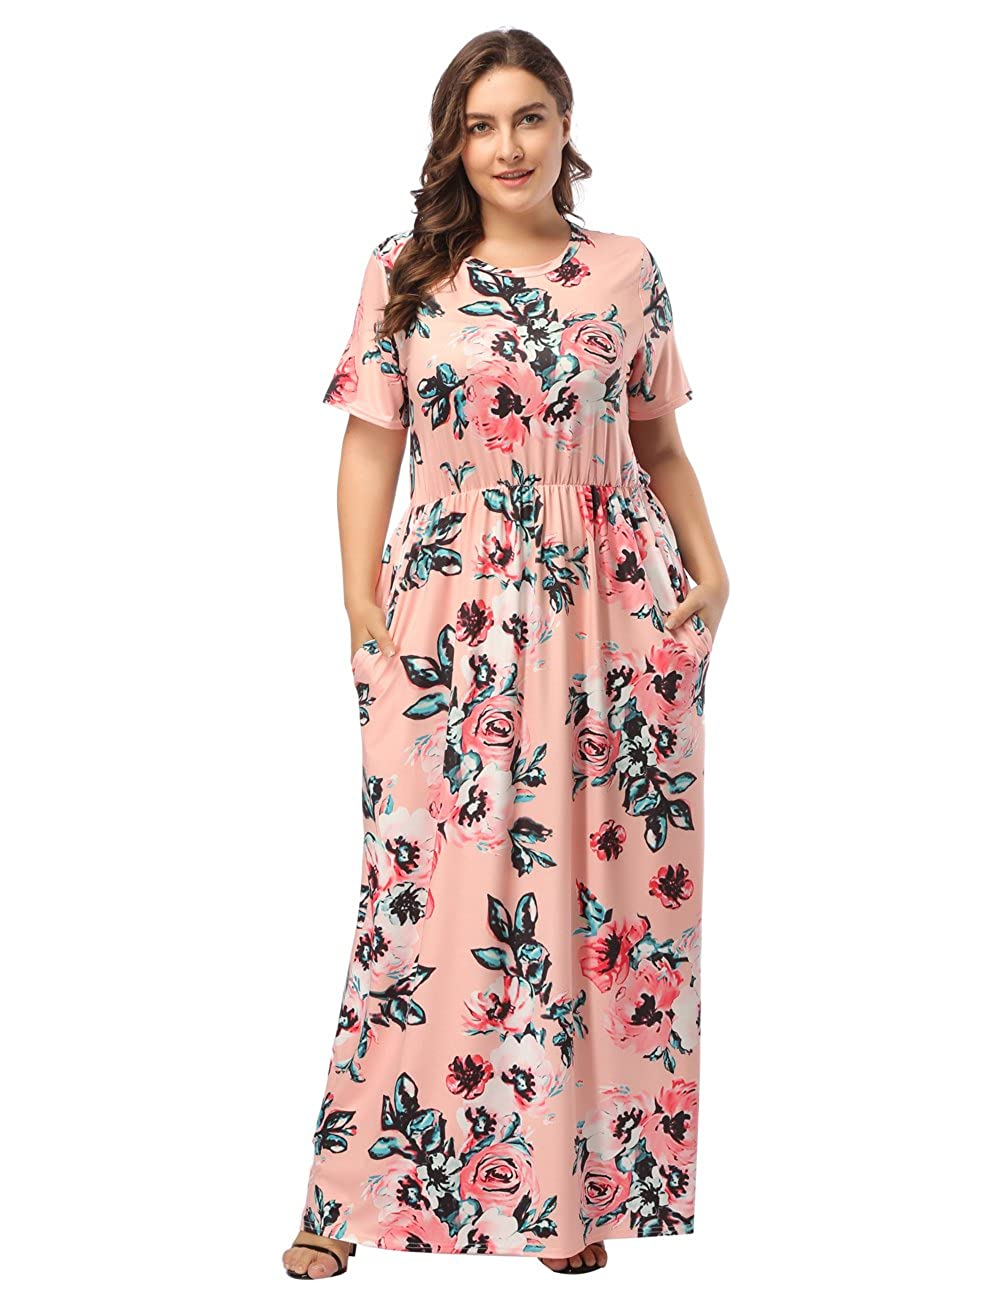 c876338ed853 DANALA Plus Size Dress Floral Print Short Sleeve Party Maxi Dress with  Pockets at Amazon Women's Clothing store: